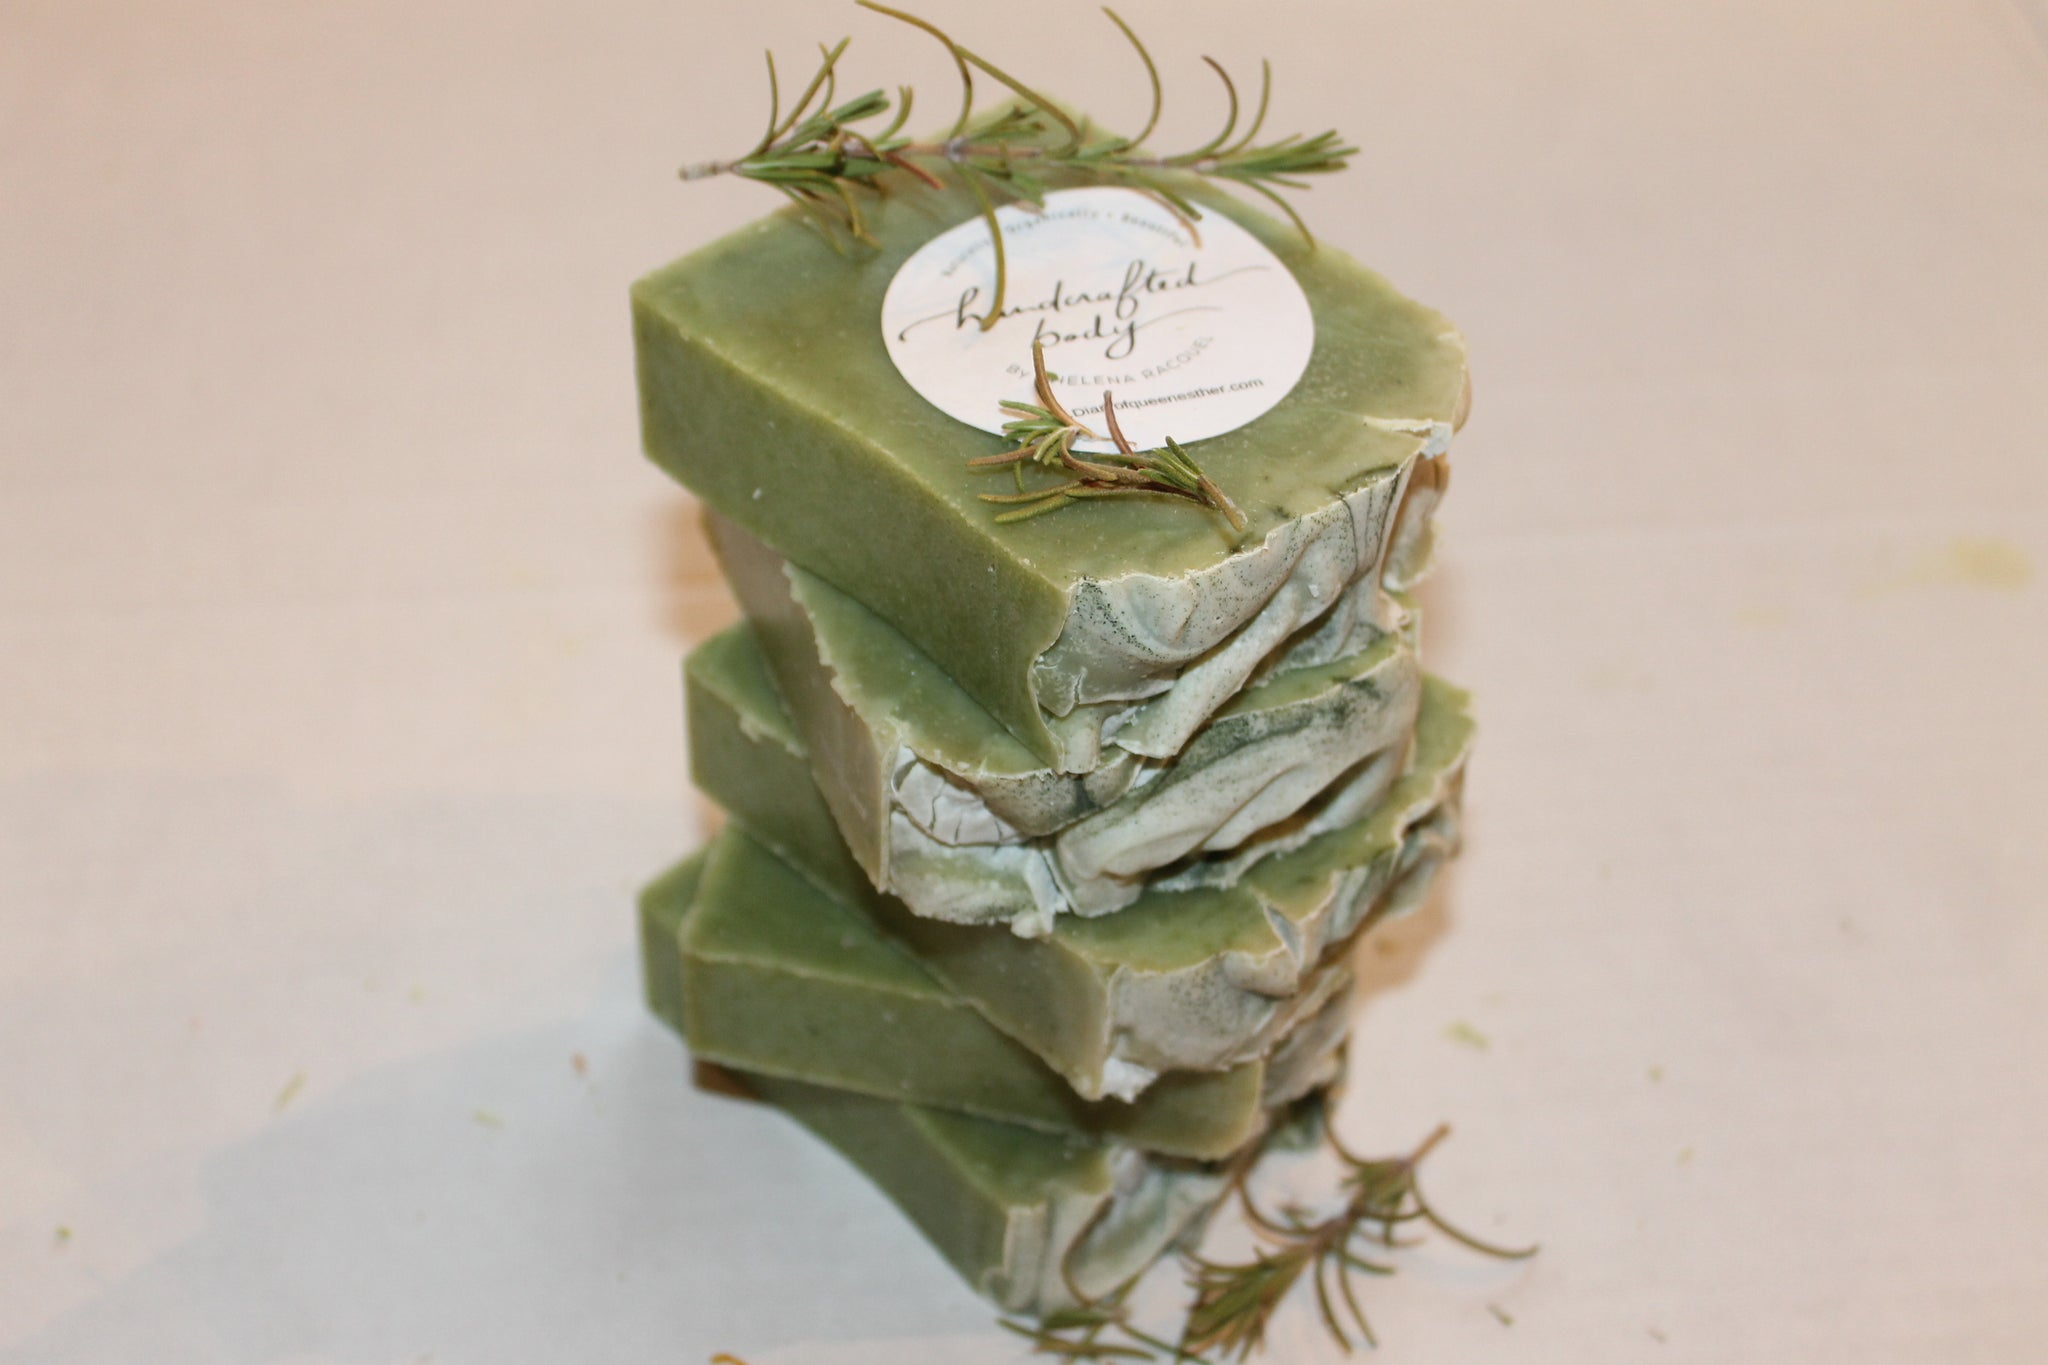 Handcrafted Herbal Rosemary & Spearmint Soap